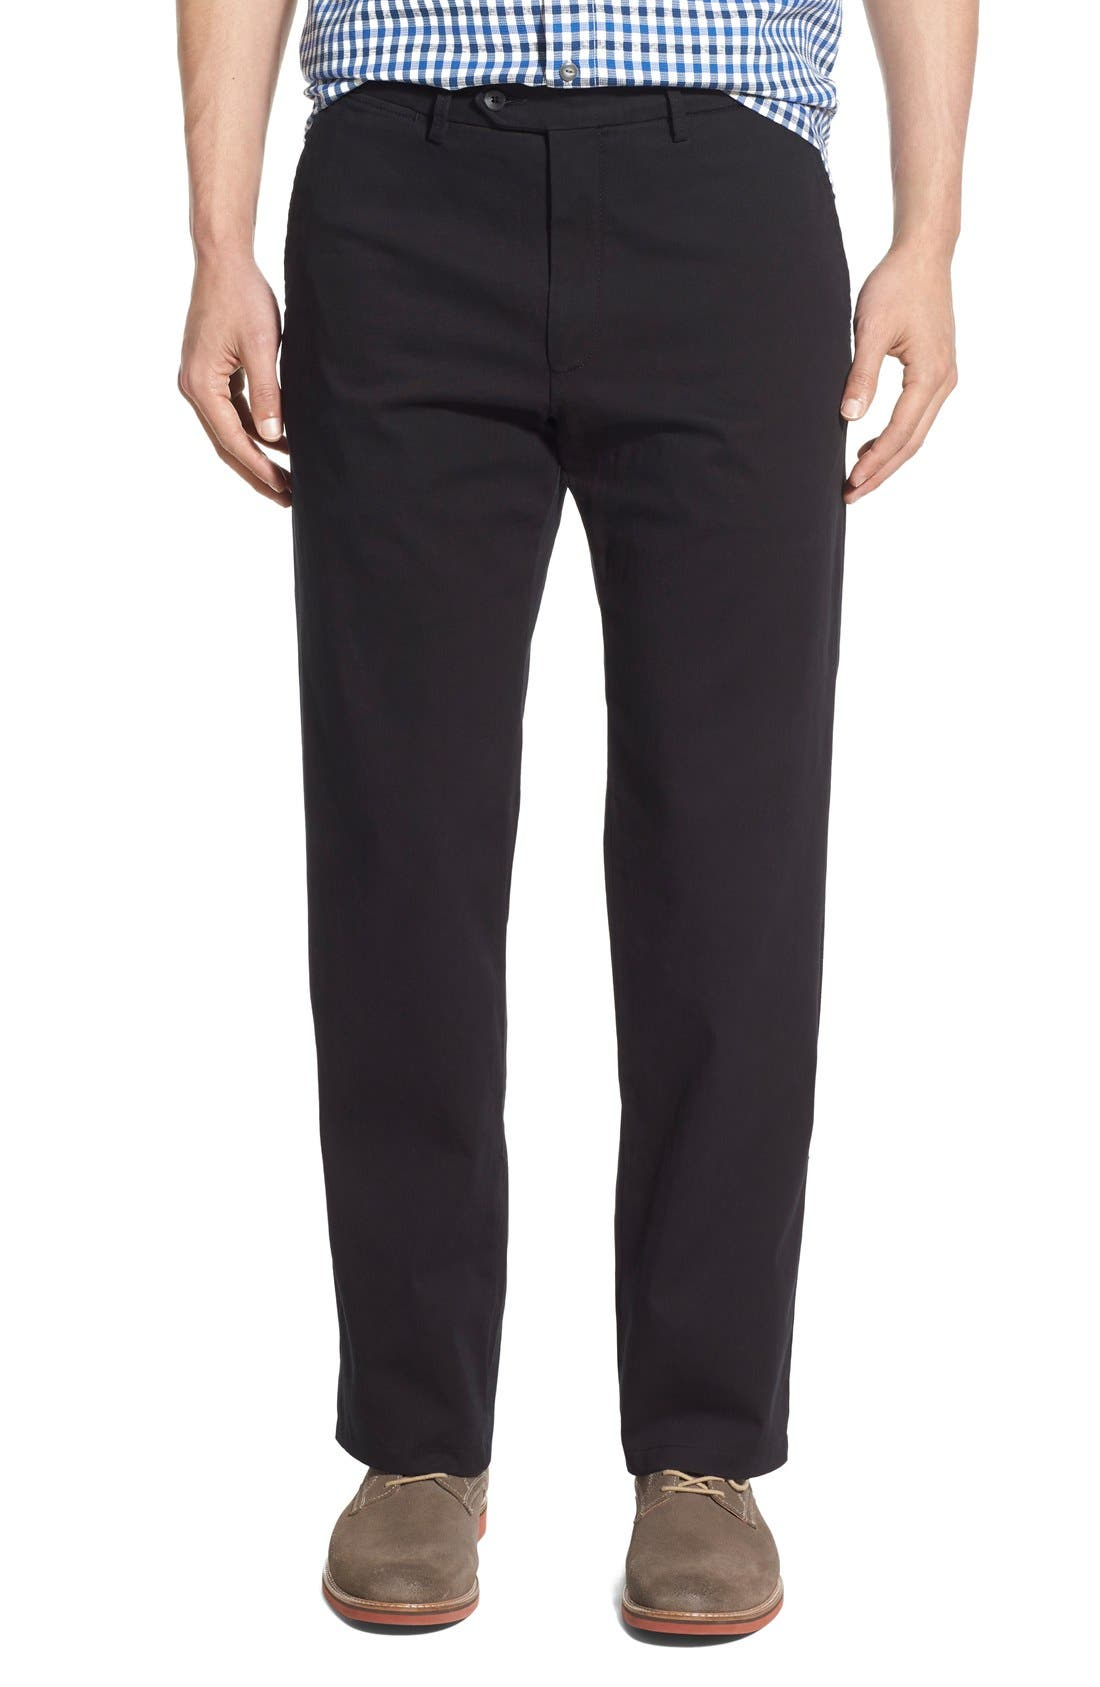 Mansfield Pima Cotton Pant,                             Main thumbnail 1, color,                             001